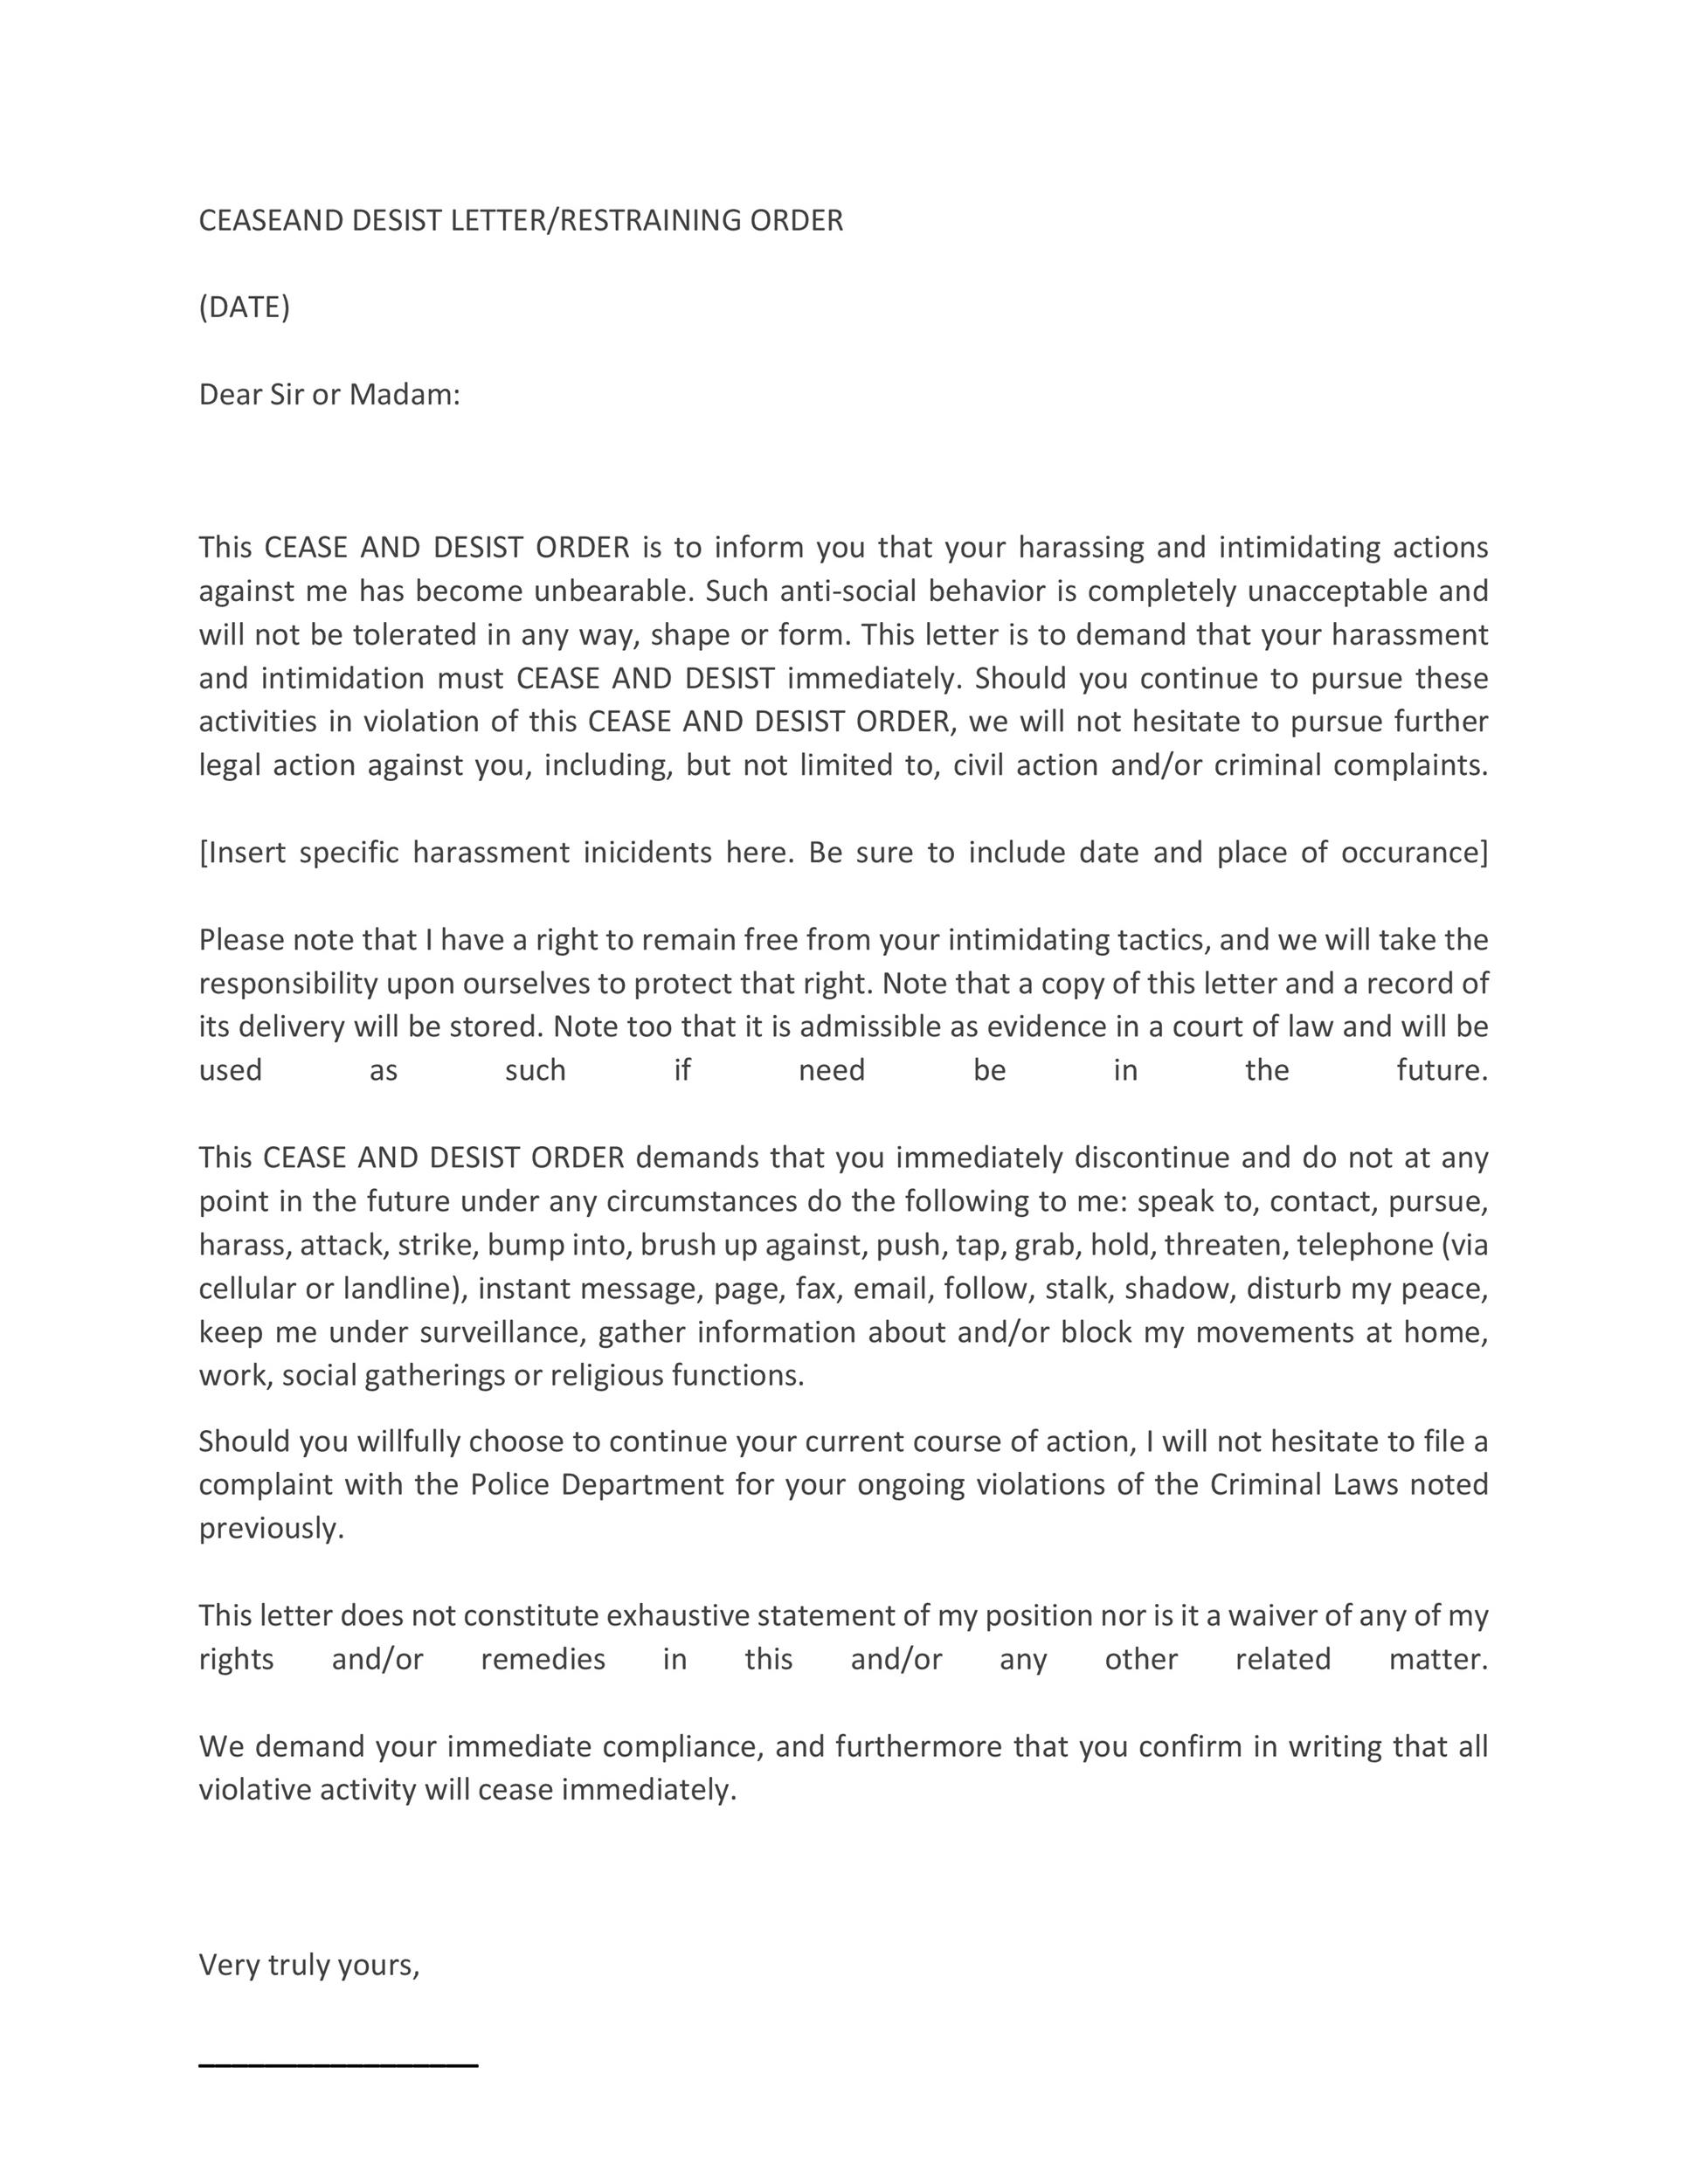 30+ Cease and Desist Letter Templates FREE ᐅ Template Lab